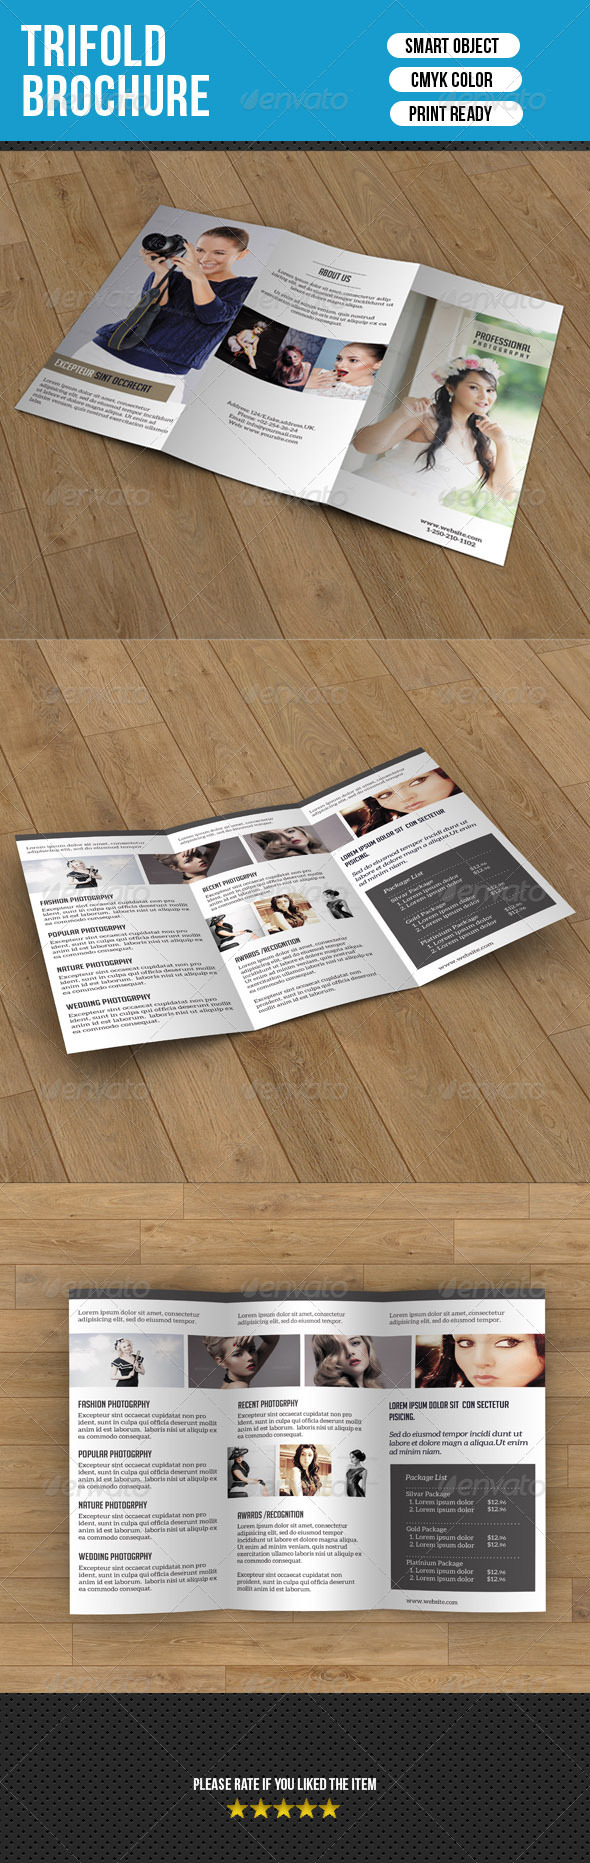 Trifold Brochure for Photography - Corporate Brochures